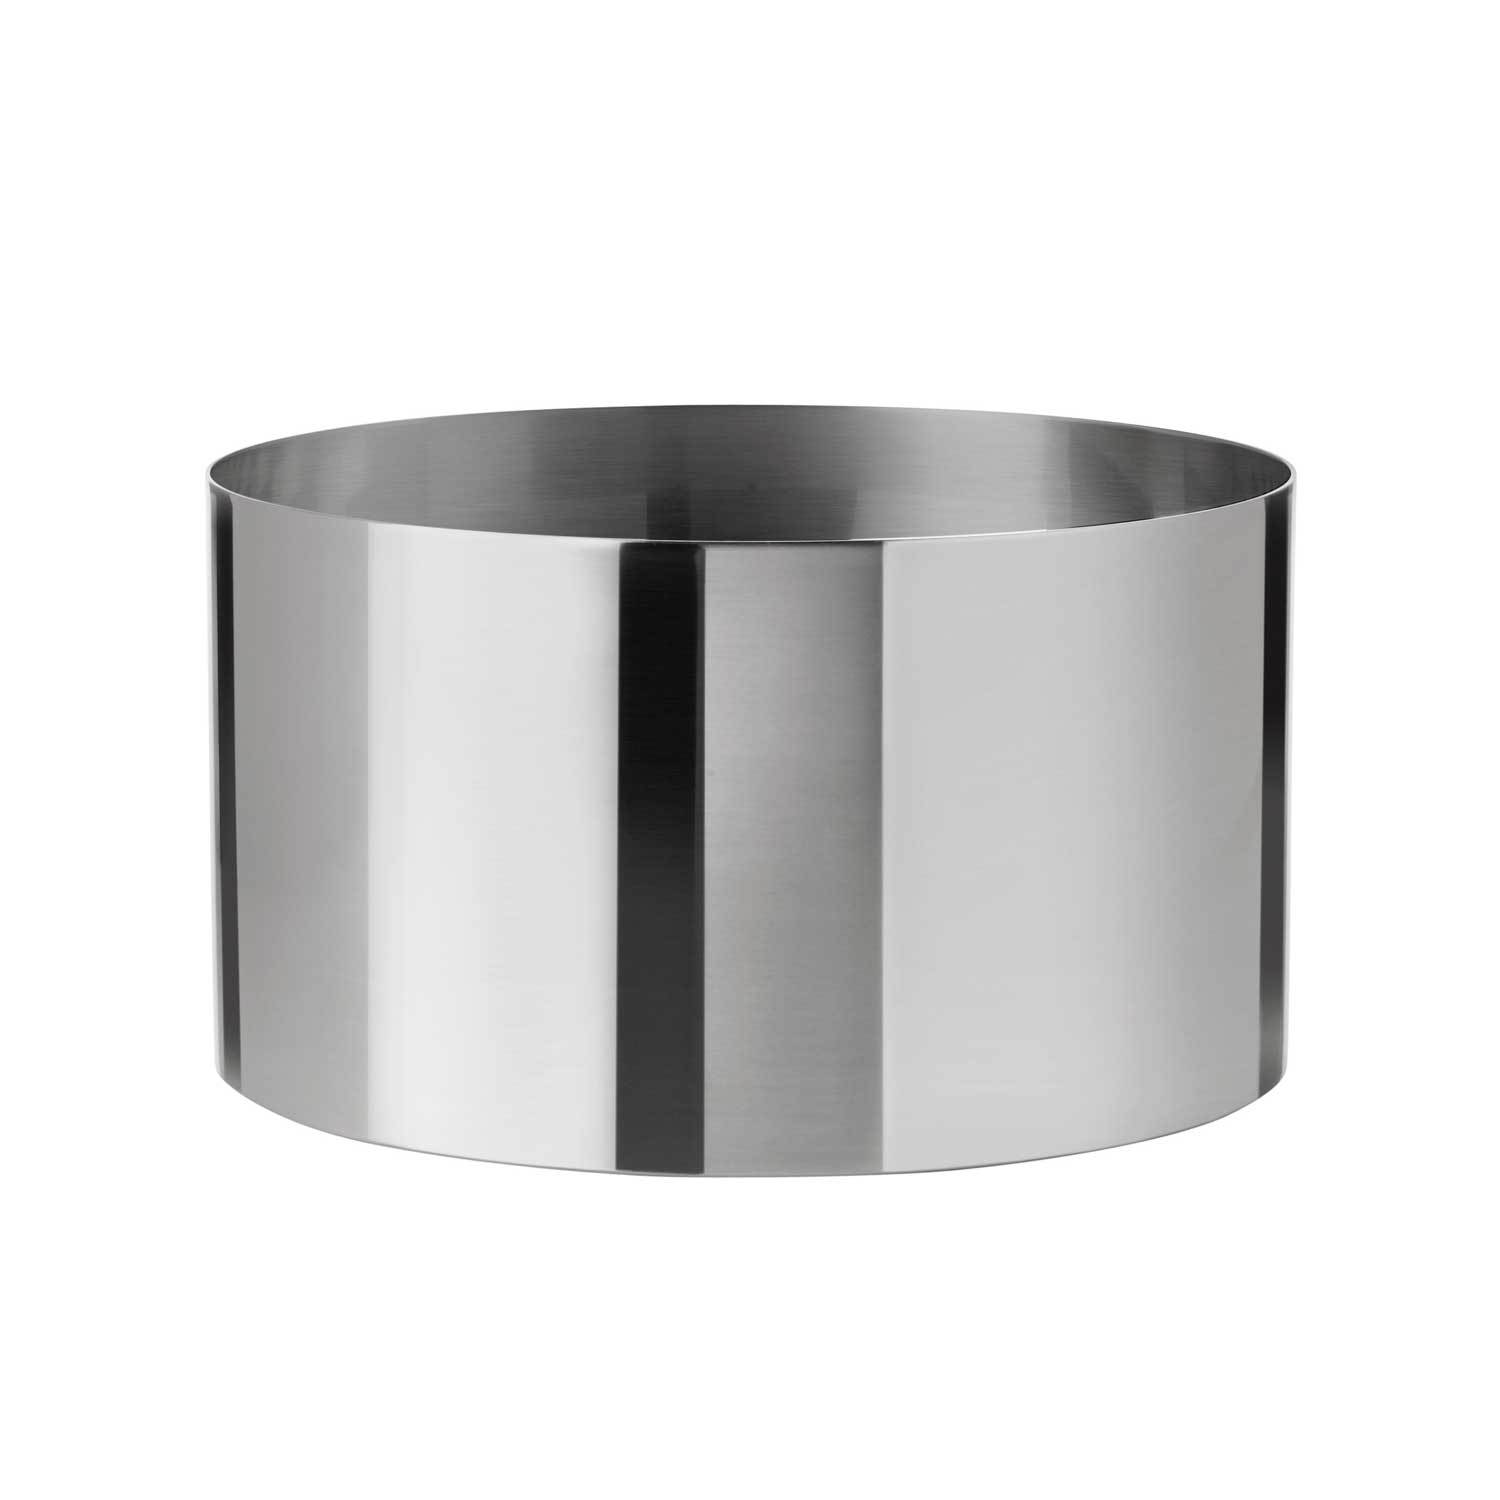 Stelton Stainless Steel Salad Bowl